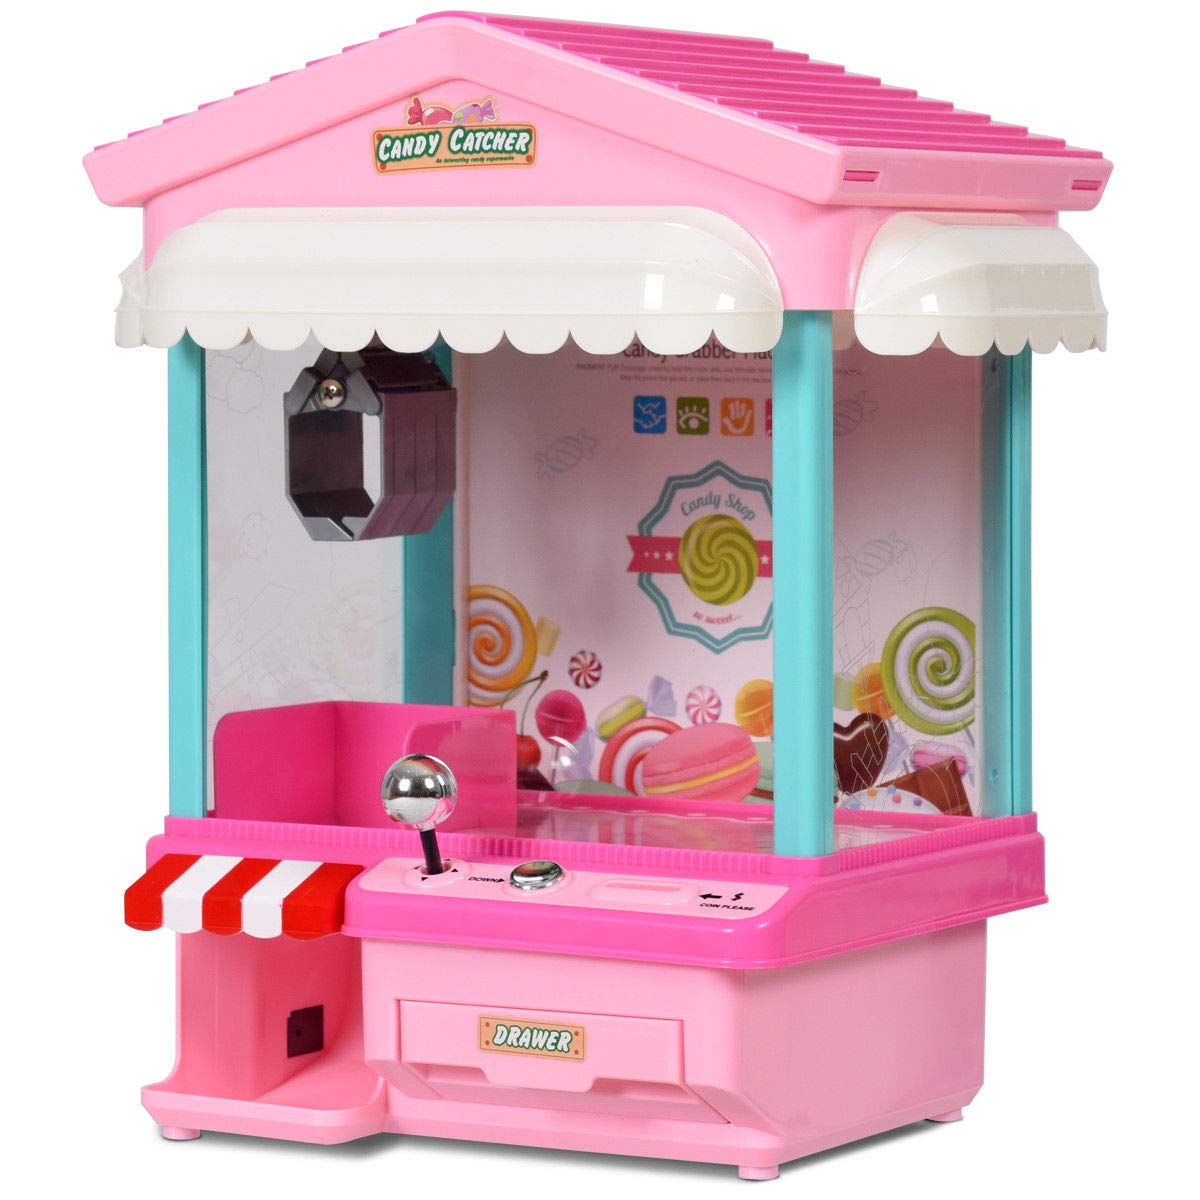 Snow Shop Everything Kids Electronic Claw Toy Grabber Machine Home Arcade w/ Lights & Music & Coins by Snow Shop Everything (Image #8)